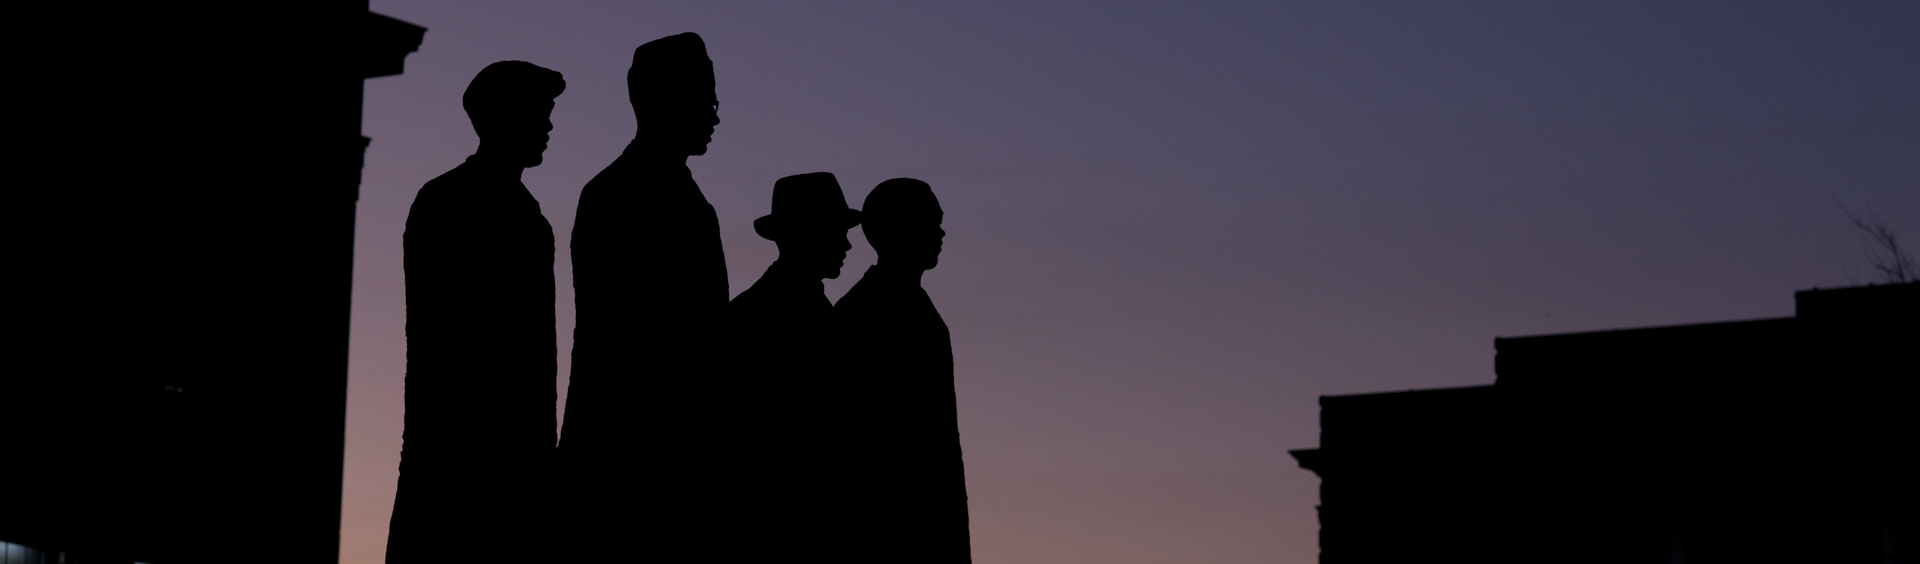 Silhouette image of A&T Four Memorial.